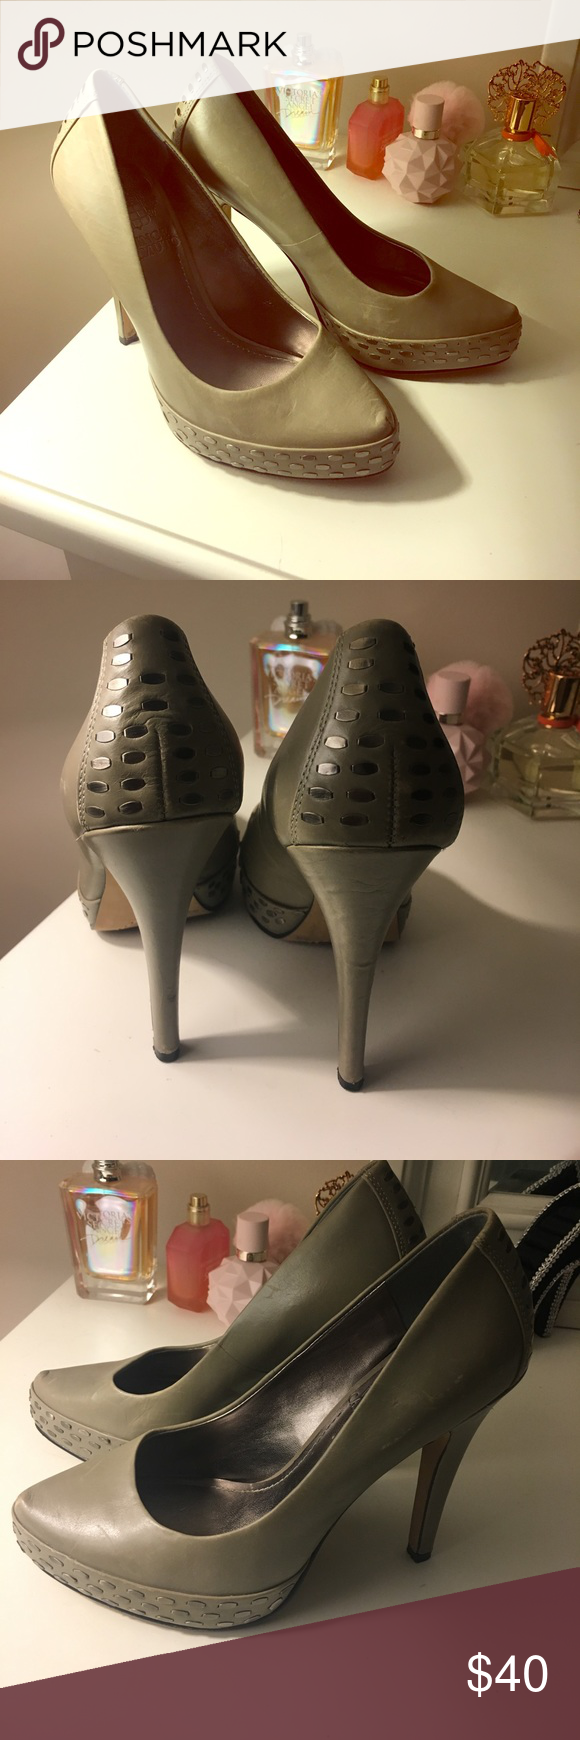 Vince camuto heels Grey leather heels with silver accents on platform . Bought from another posher but they weren't the size described . Look great with minor scuffing. I wish they were my size Vince Camuto Shoes Heels